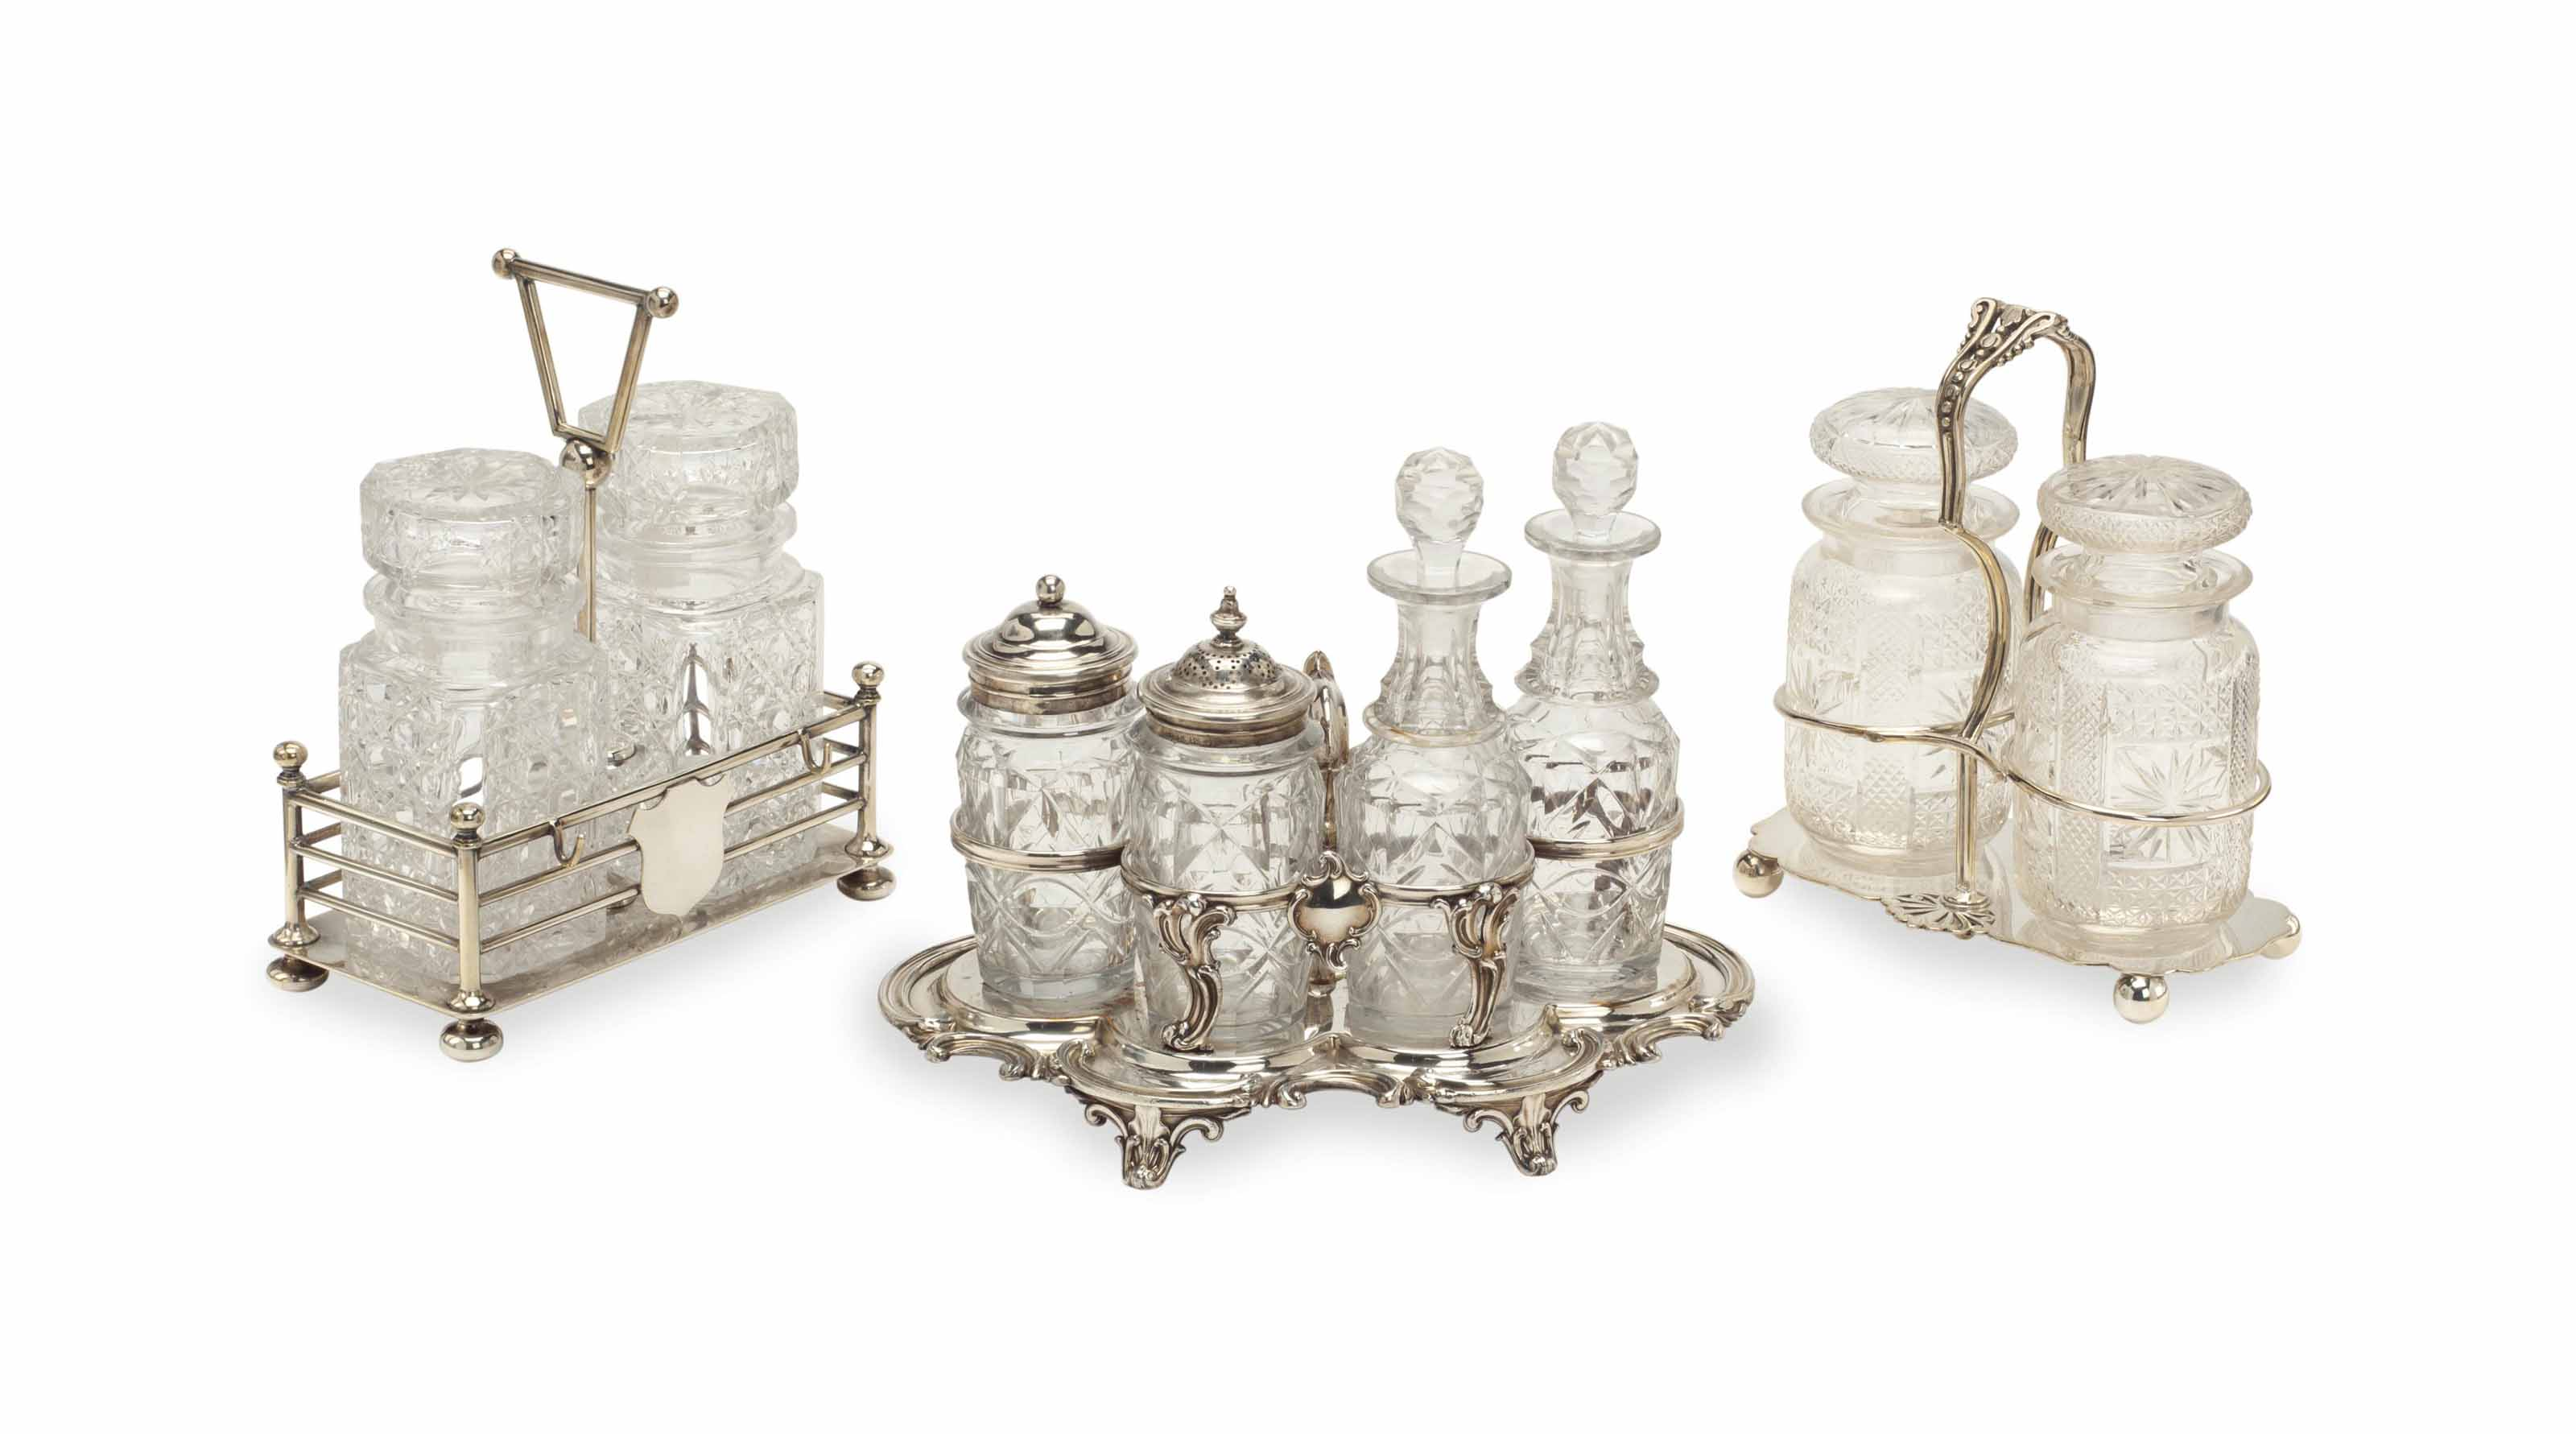 THREE CUT GLASS CONDIMENT SETS IN SILVER PLATE CADDIES, AND A SILVER PLATE BREAD BASKET,